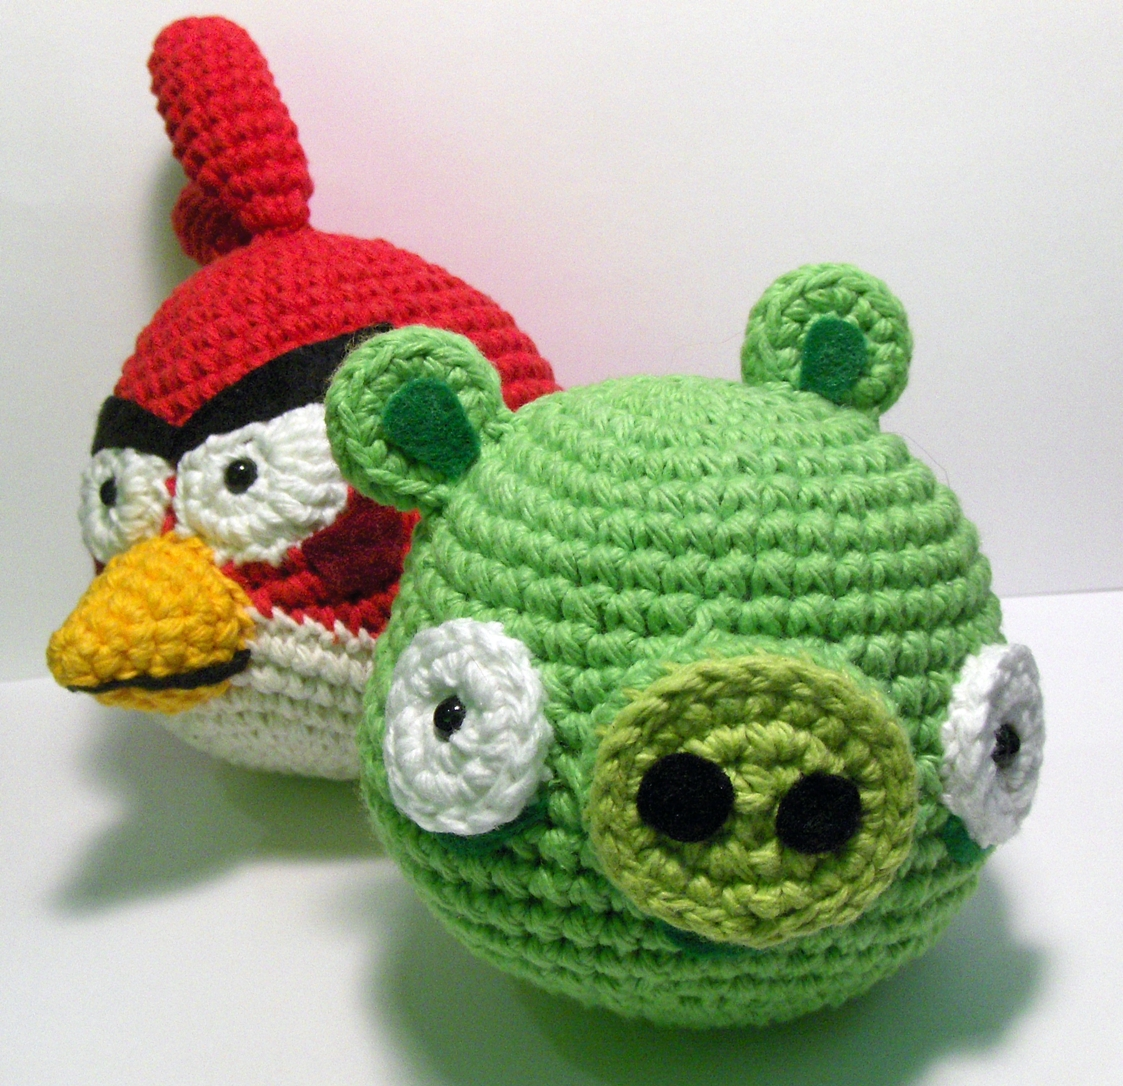 Free Amigurumi Patterns Online : Nerdigurumi - Free Amigurumi Crochet Patterns with love ...